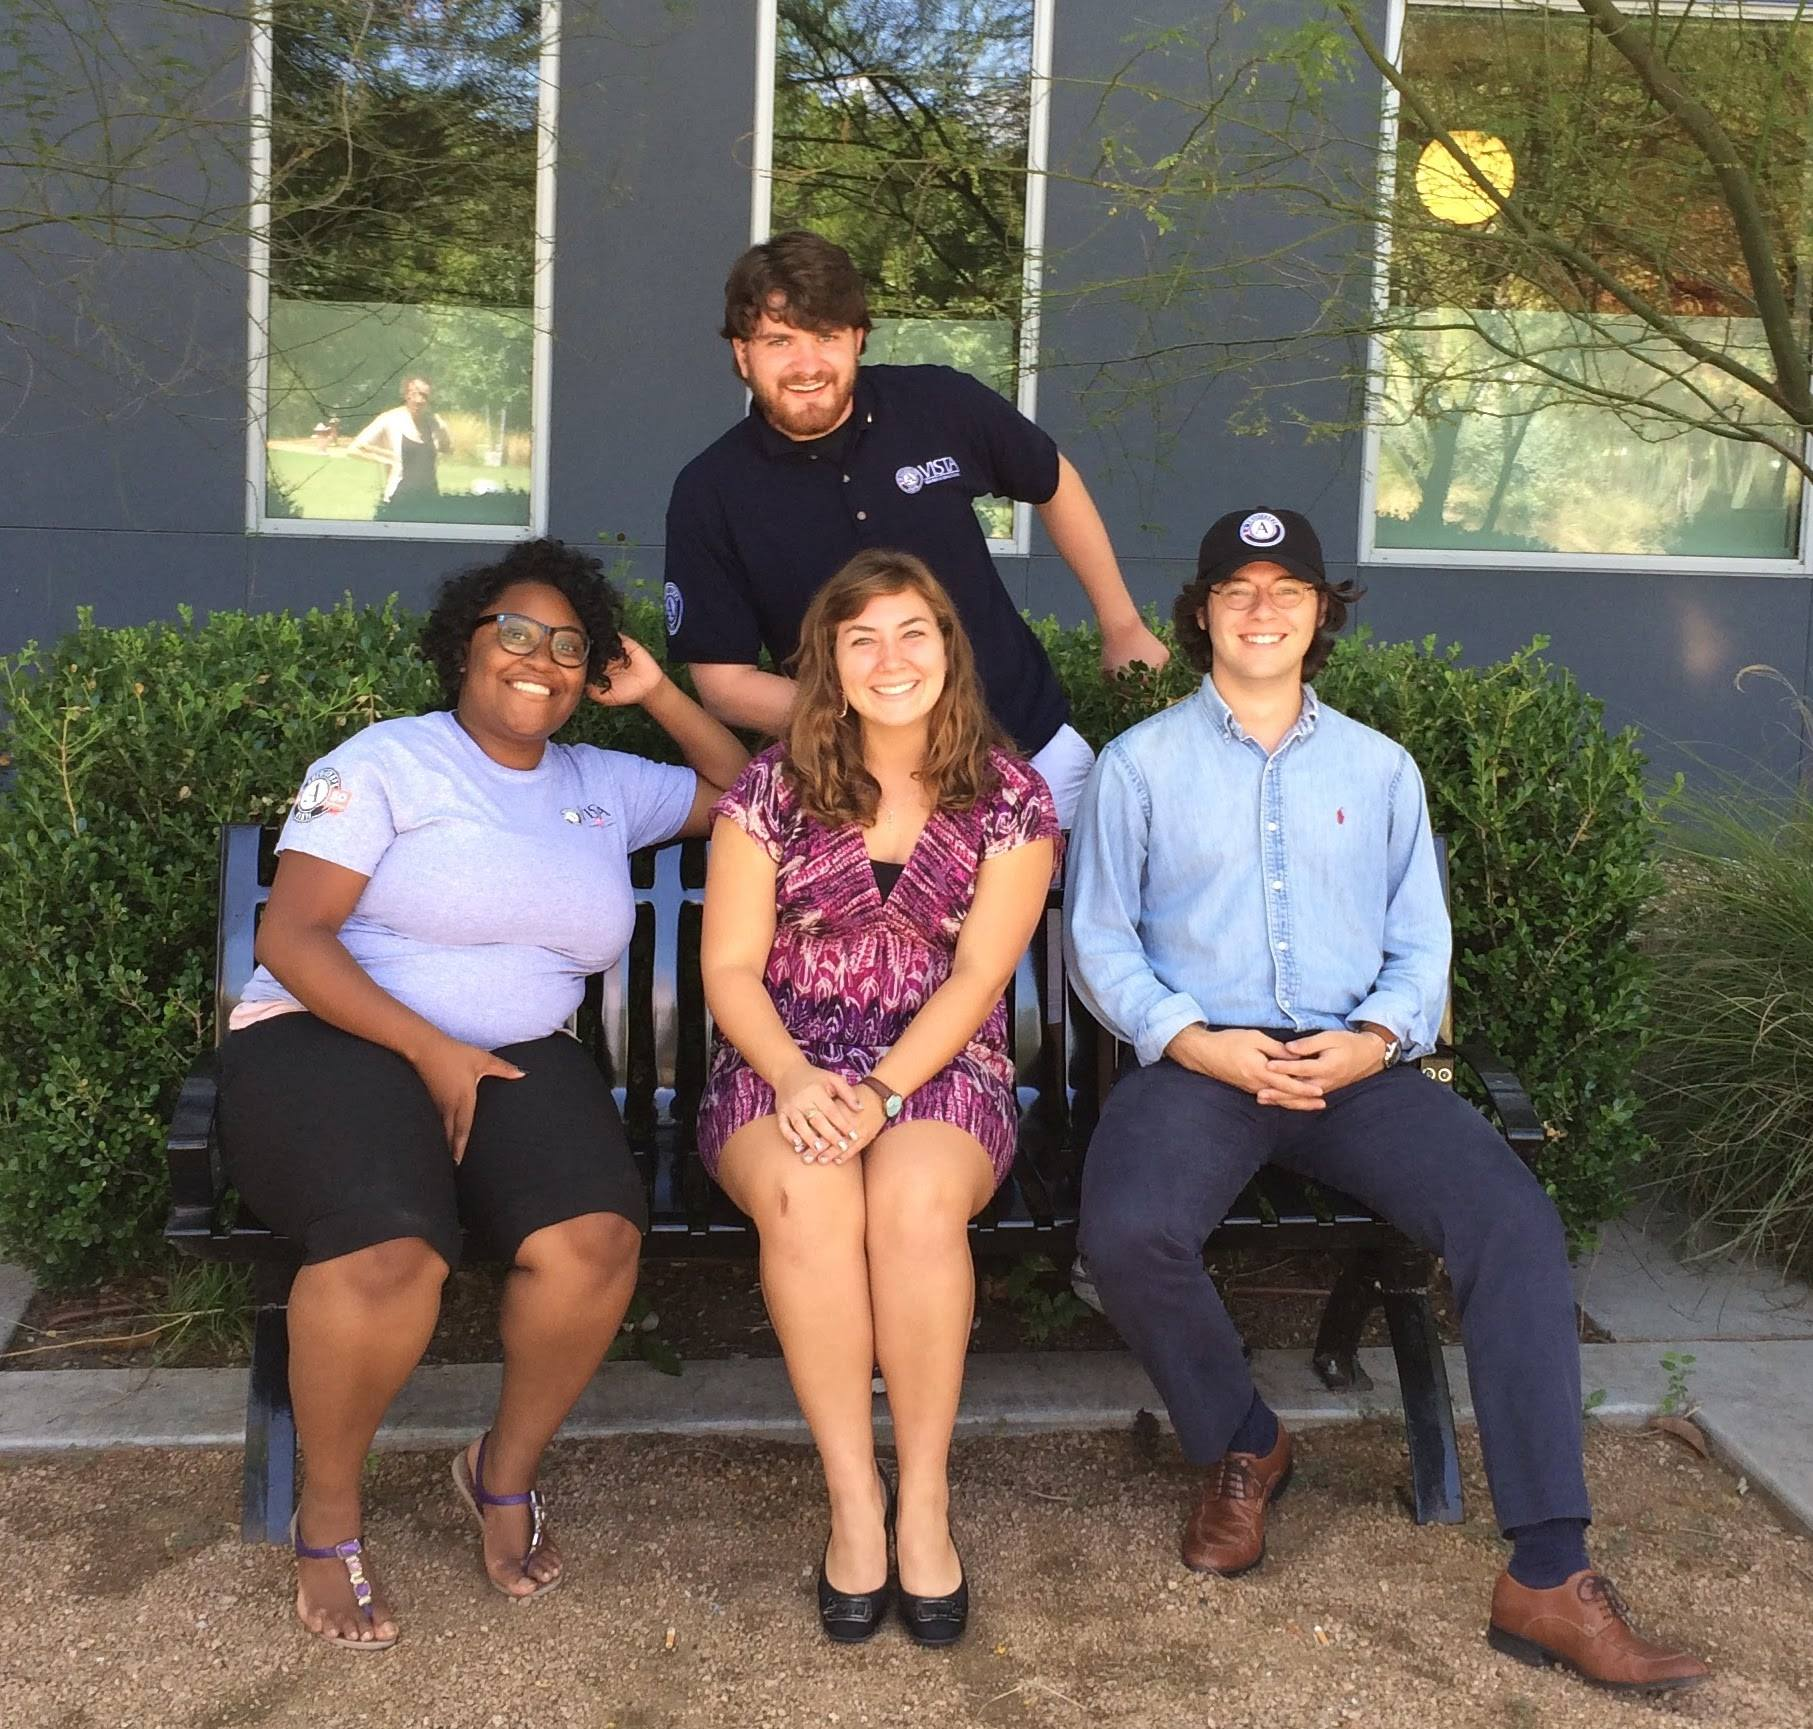 Taylor Miller, Jack Mitts, Rebecca Earle, and Meesuka Morelus at their VISTA Orientation in November 2016.